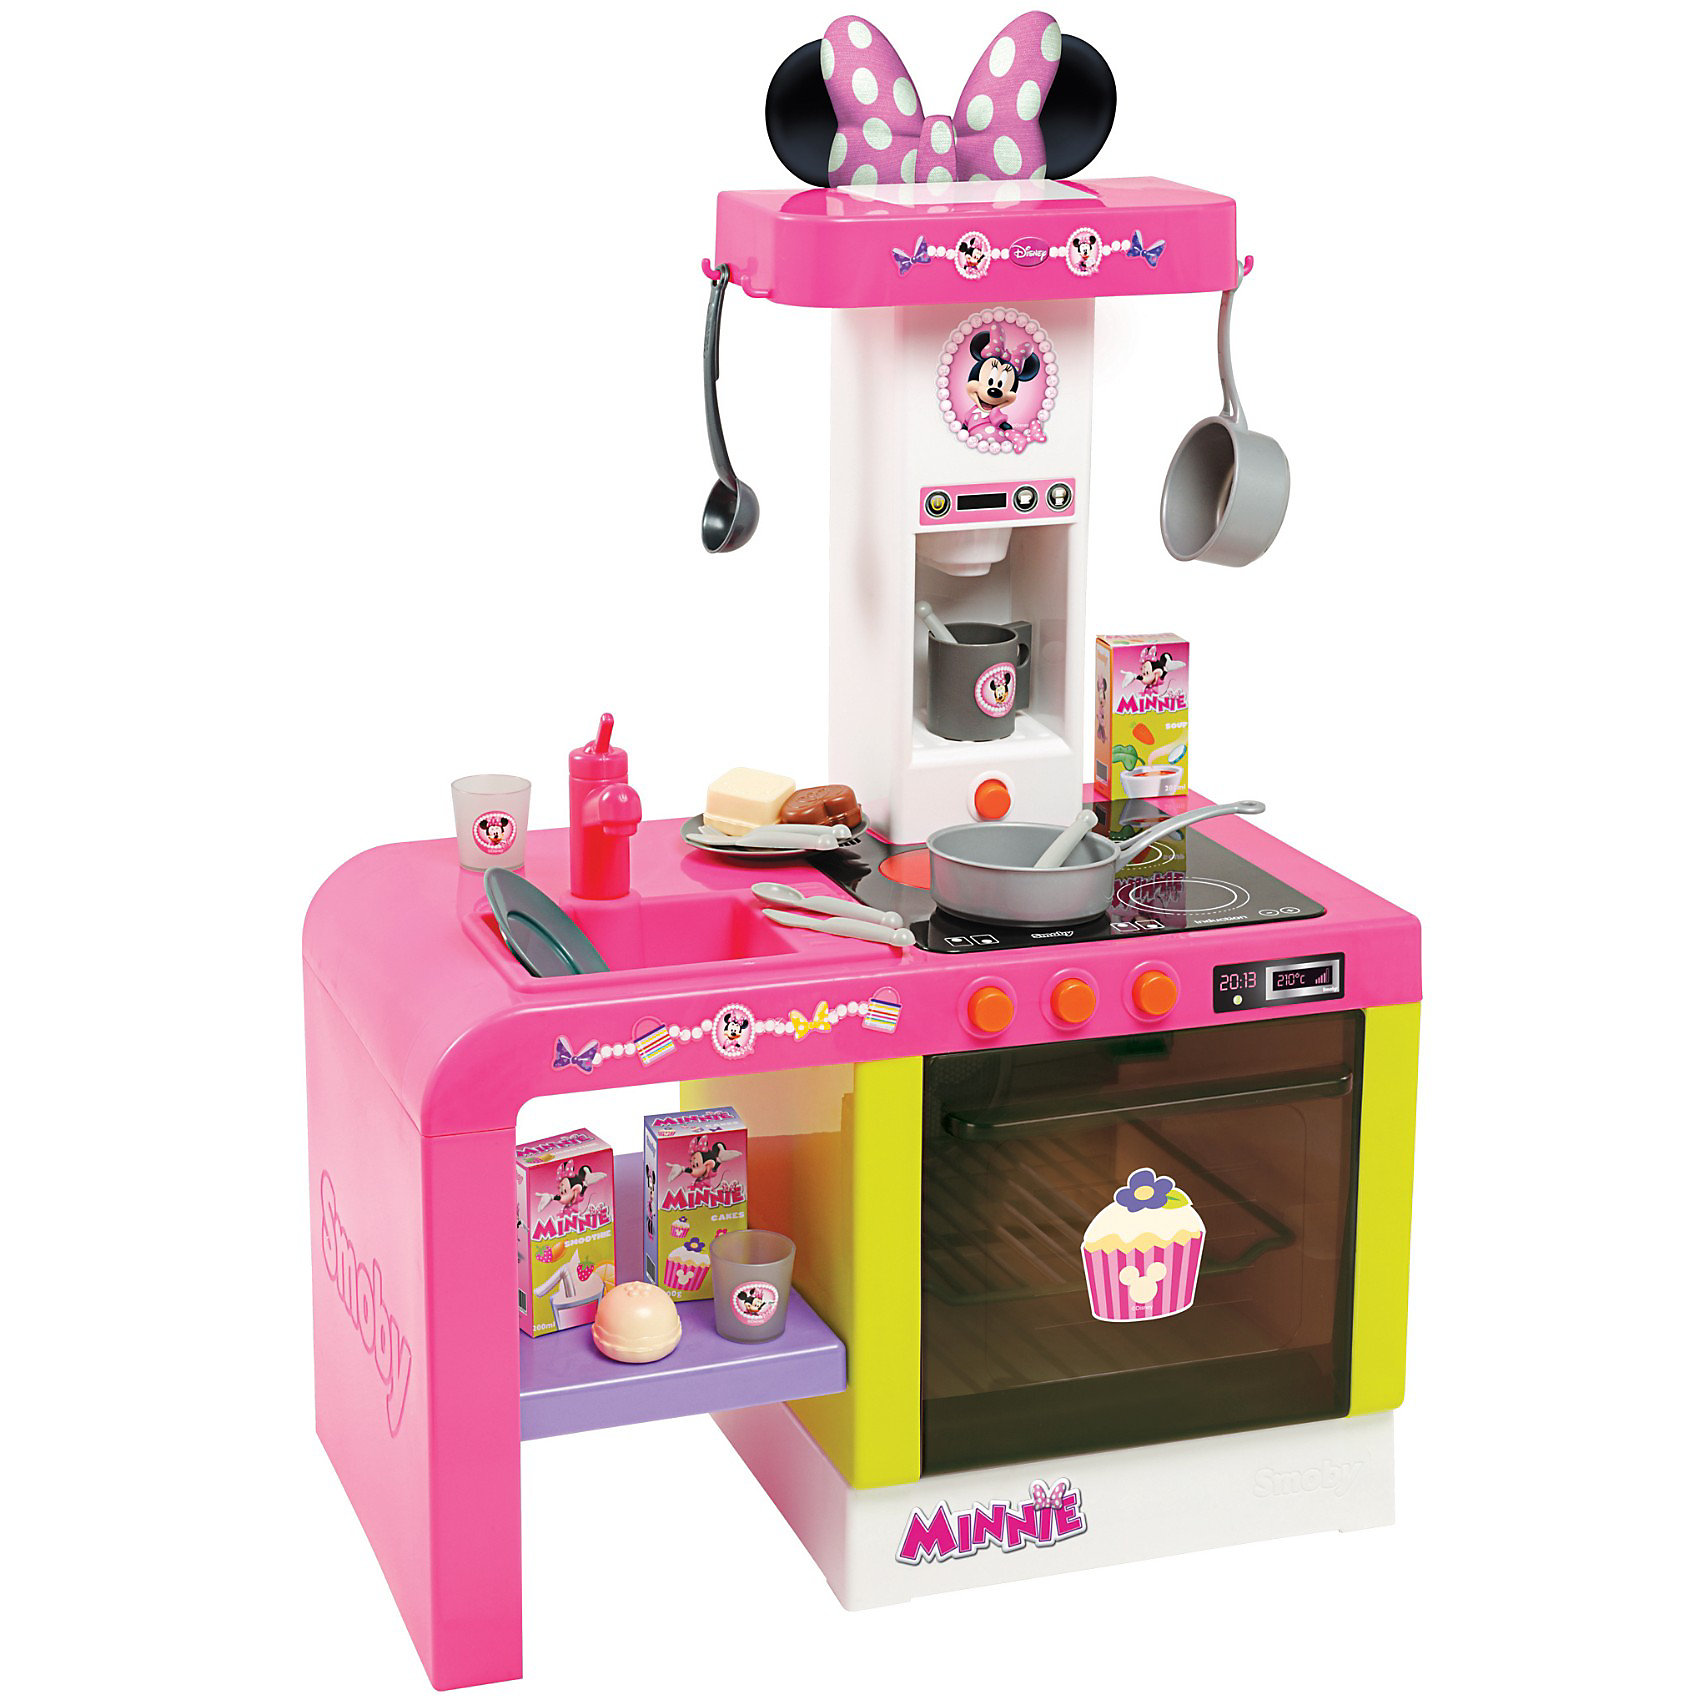 Smoby Кухня Cheftronic Minnie звук и свет, Smoby горка smoby мега 2 в 1 352х112х186 см